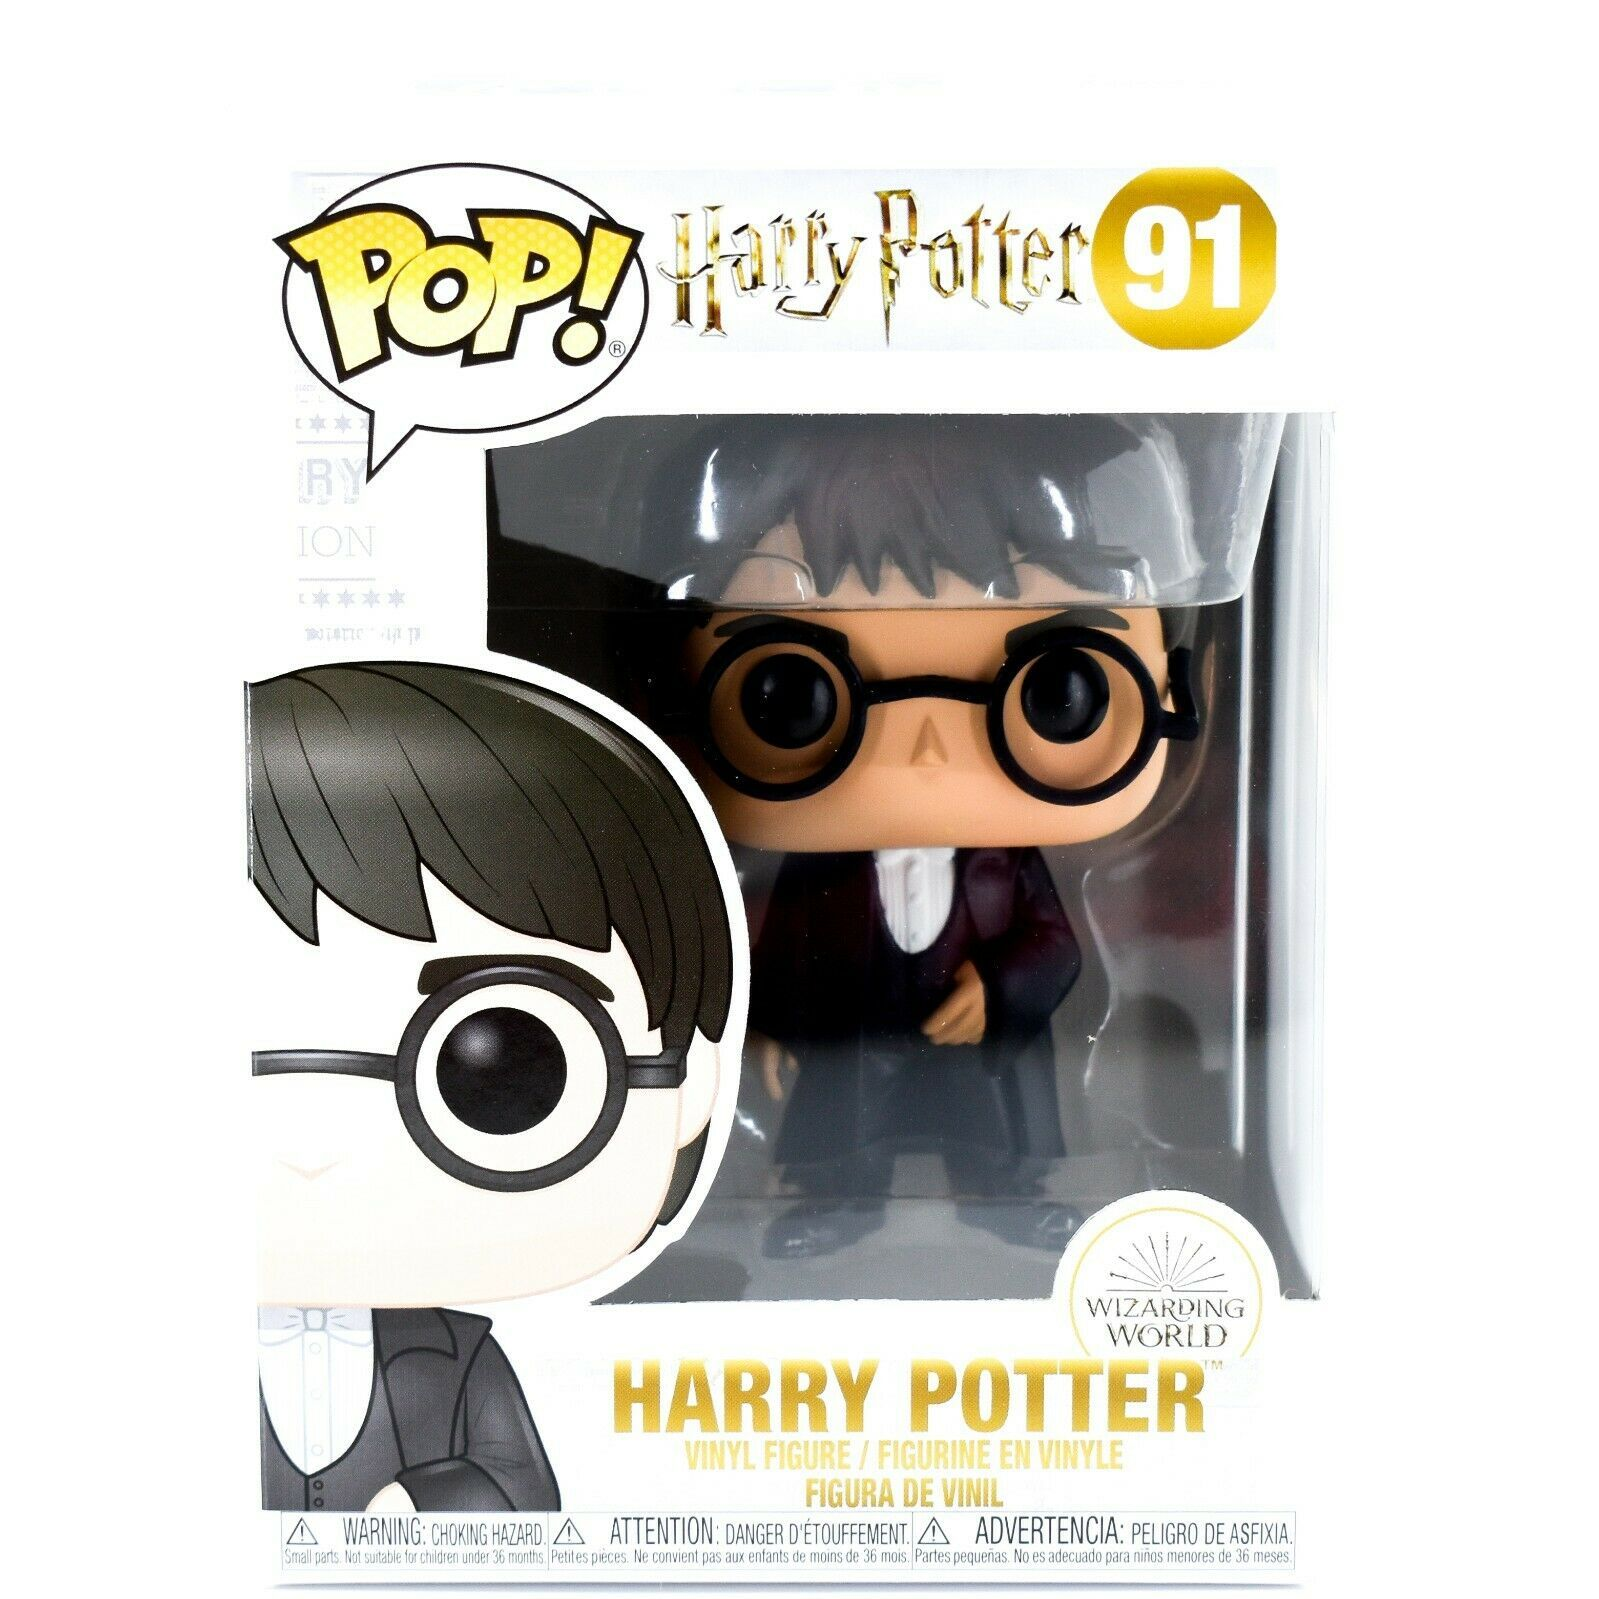 Funko Pop! Harry Potter Yule Ball Outfit #91 Vinyl Action Figure